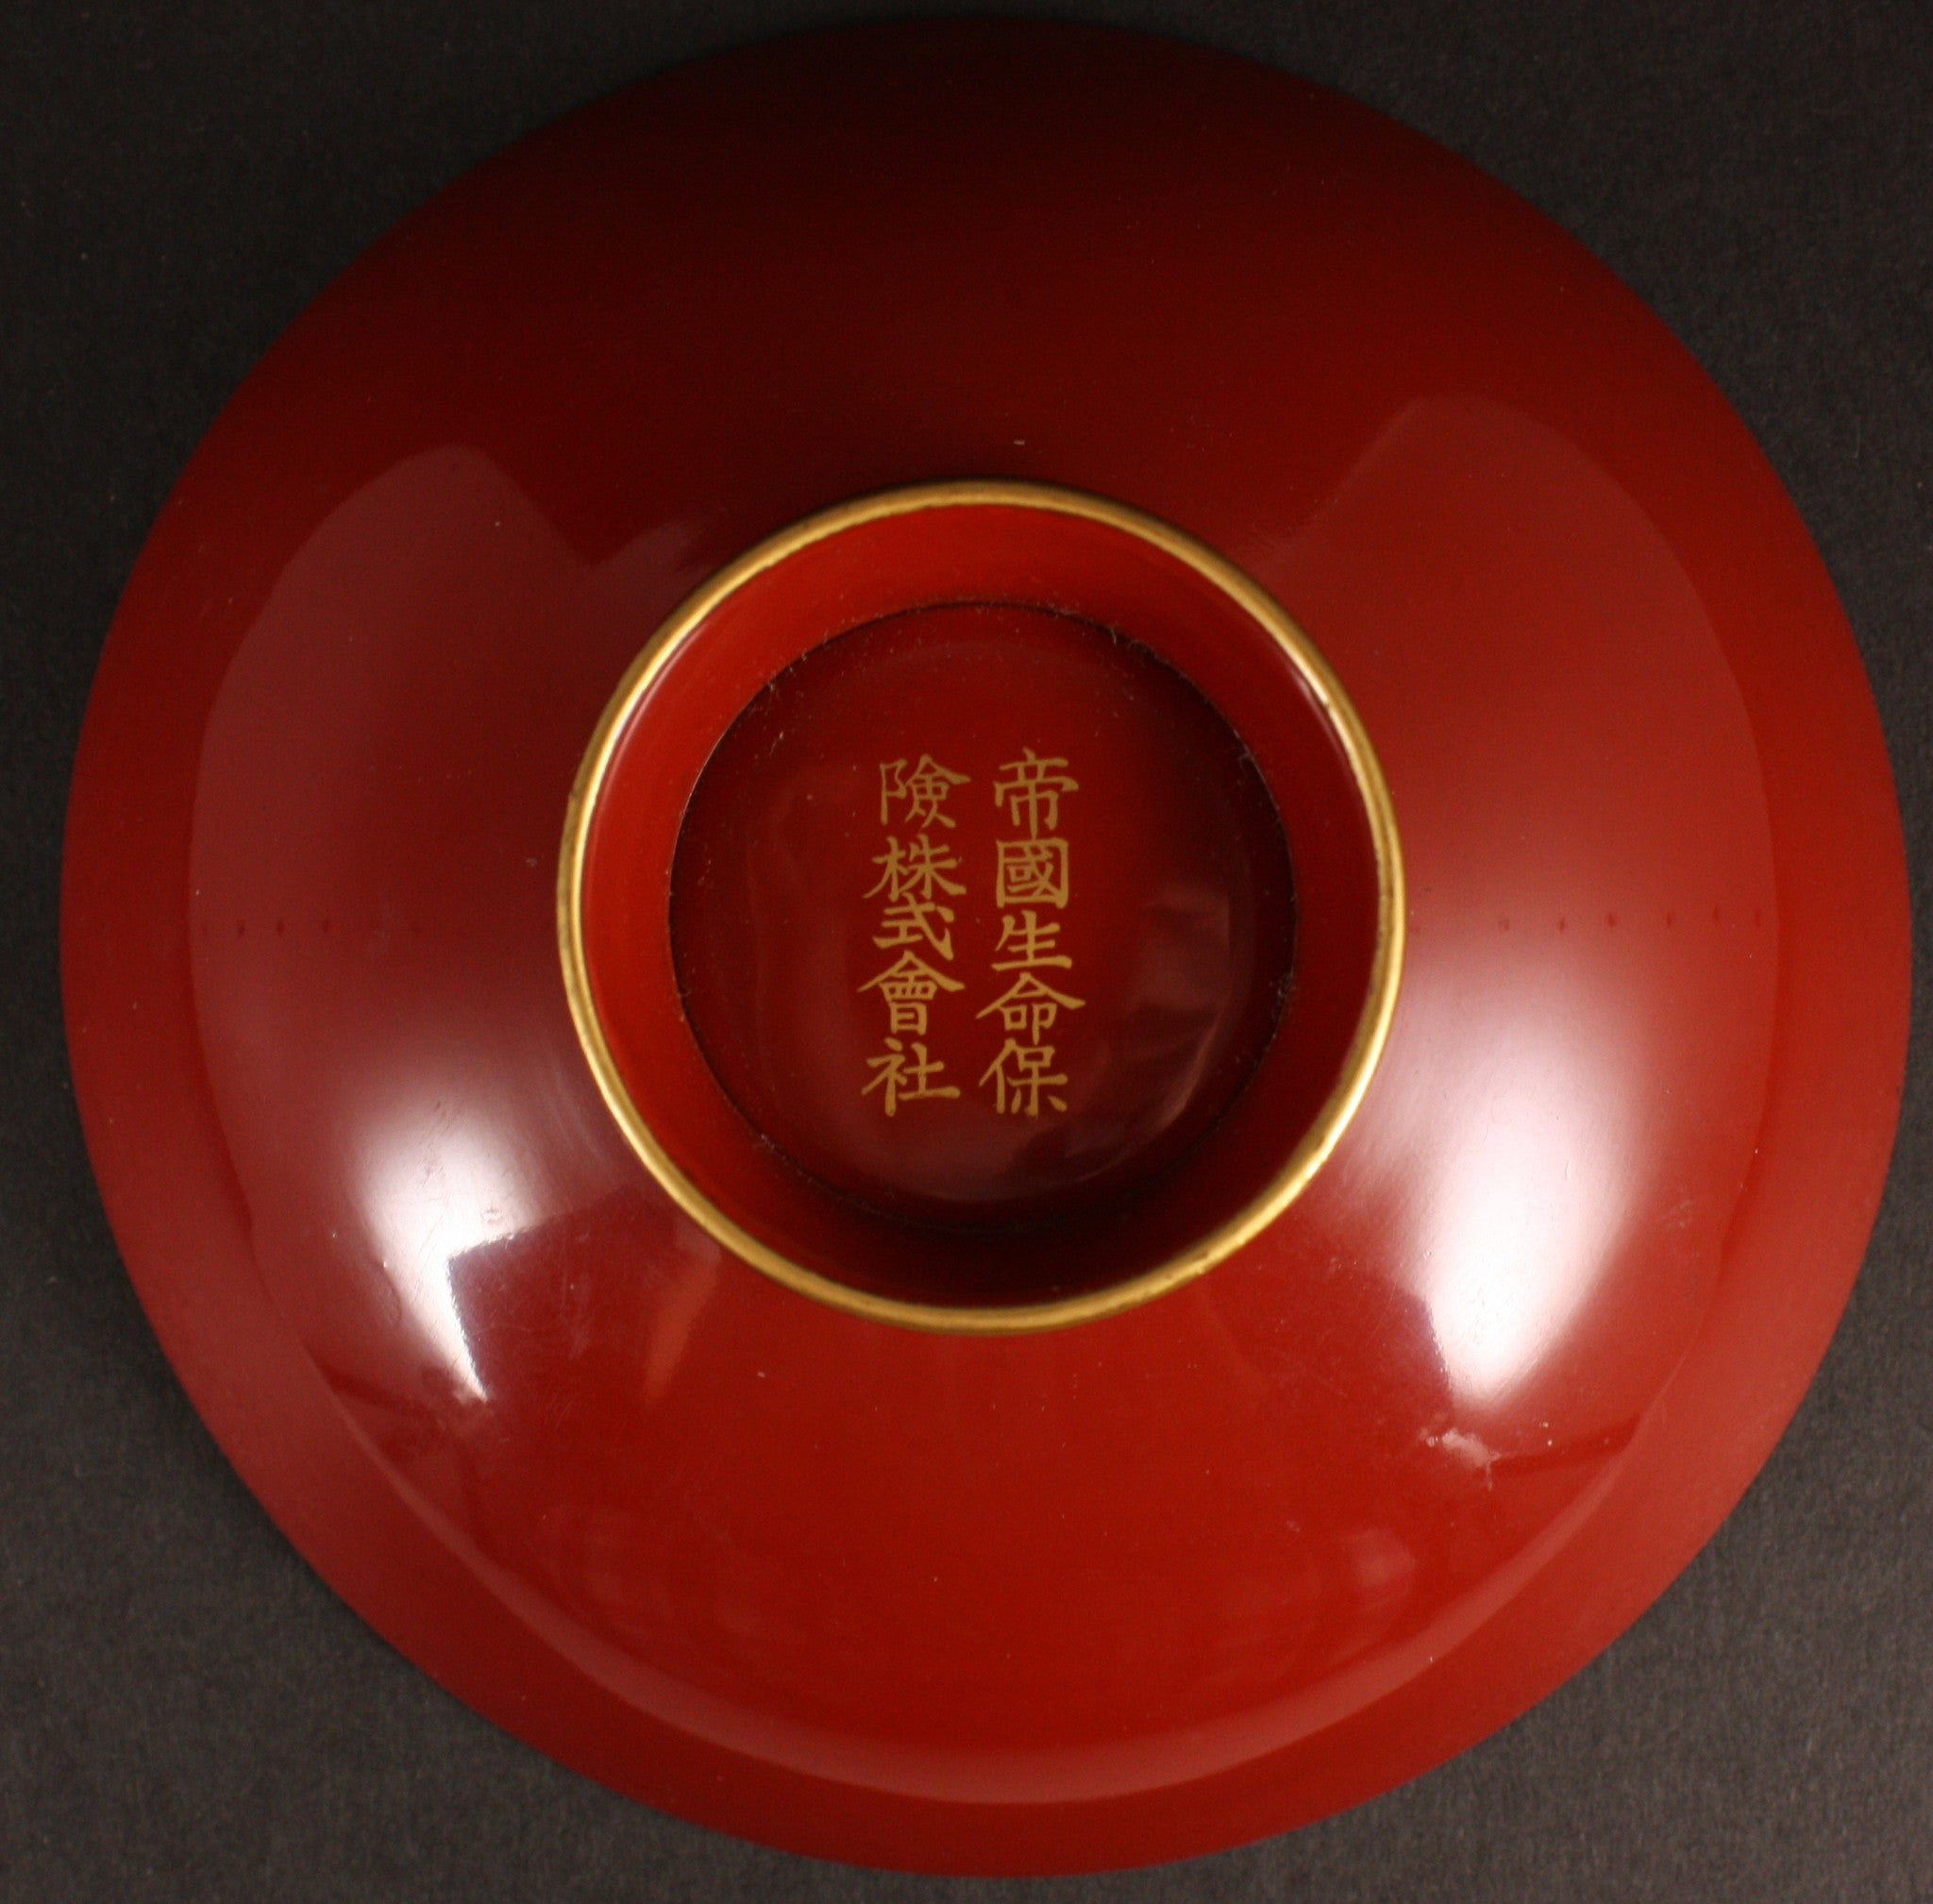 Beautiful Antique Japanese Imperial Life Insurance Company Lacquer Sake Cup